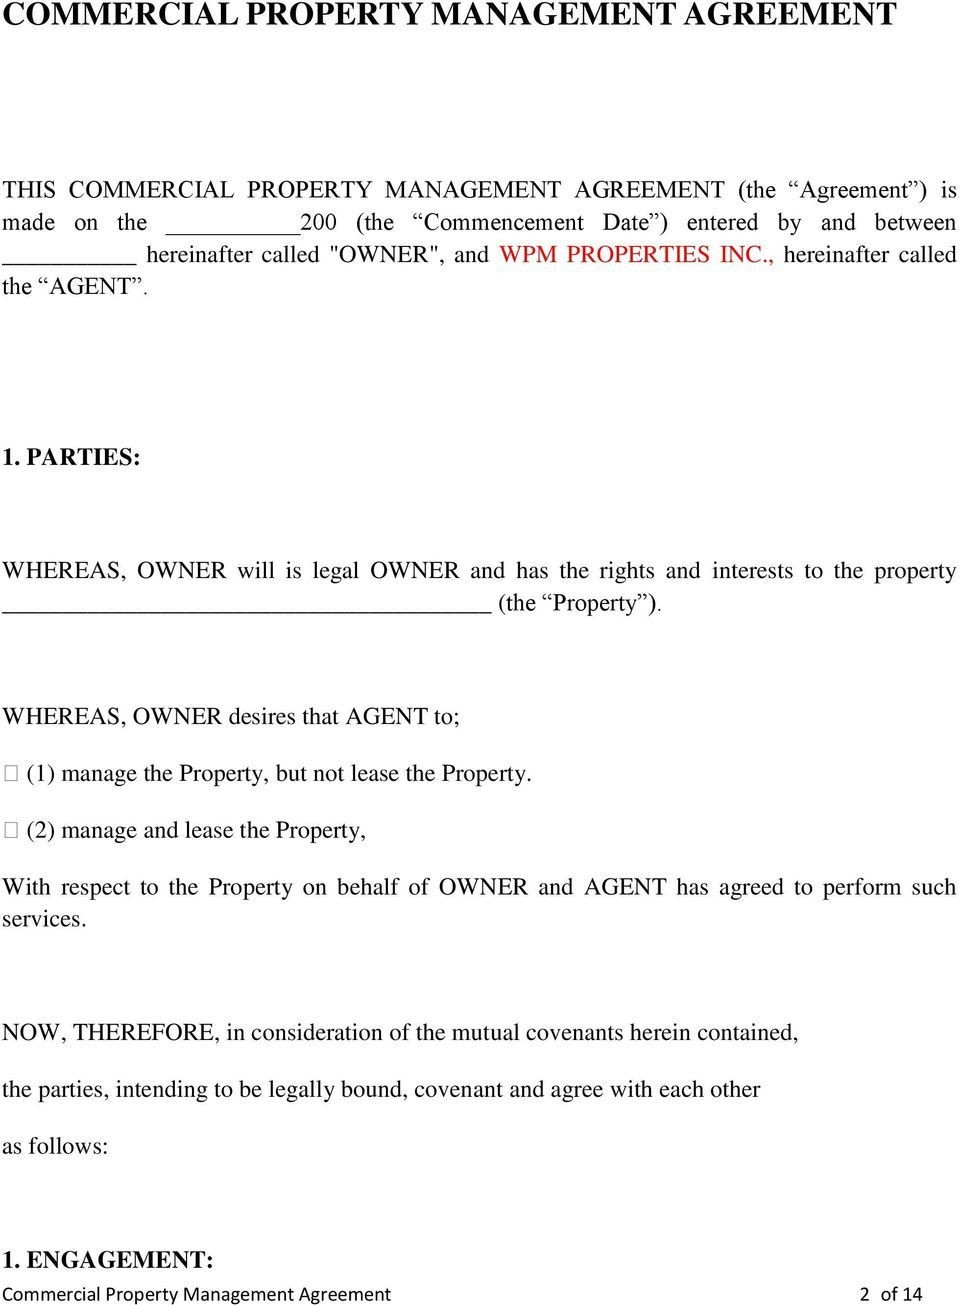 005 Imposing Property Management Contract Form Sample  Agreement Template Ontario960